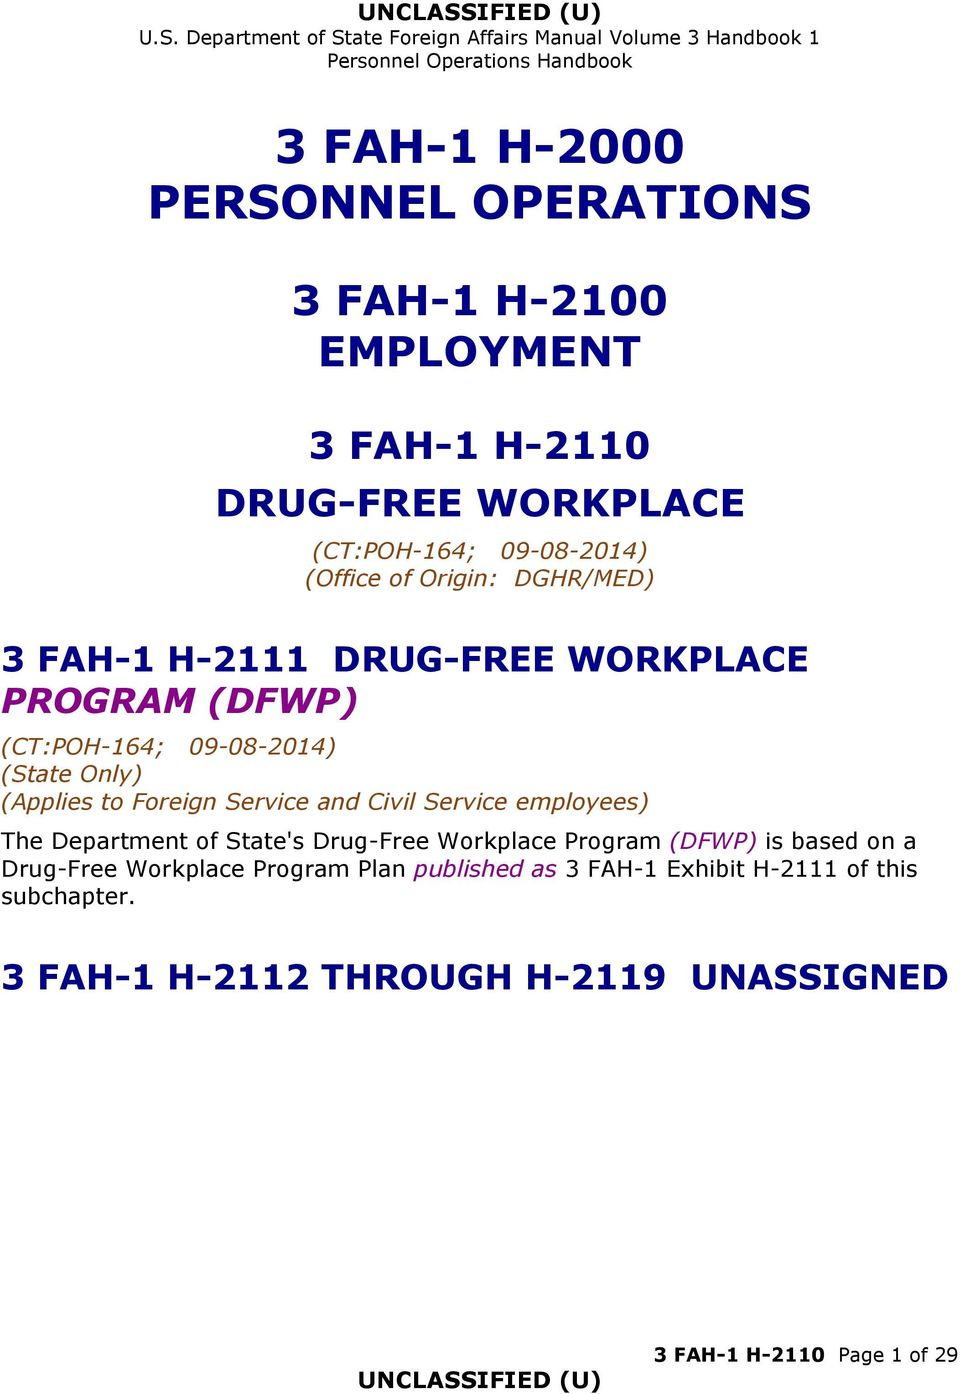 Service and Civil Service employees) The Department of State's Drug-Free Workplace Program (DFWP) is based on a Drug-Free Workplace